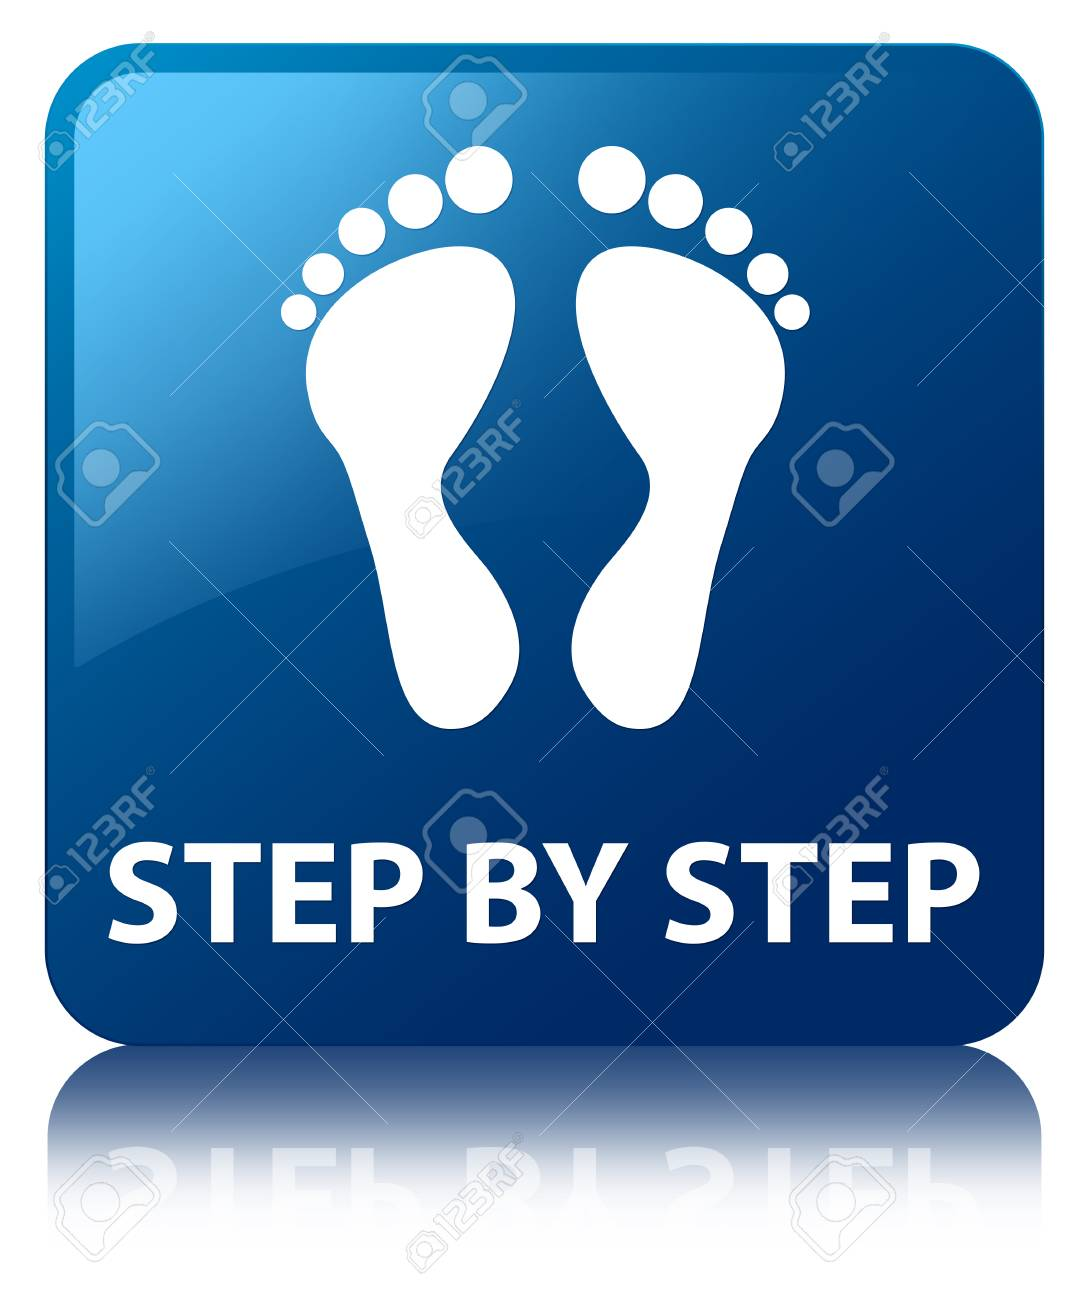 Step by step  footprint icon  glossy blue reflected square button Stock Photo - 22231108